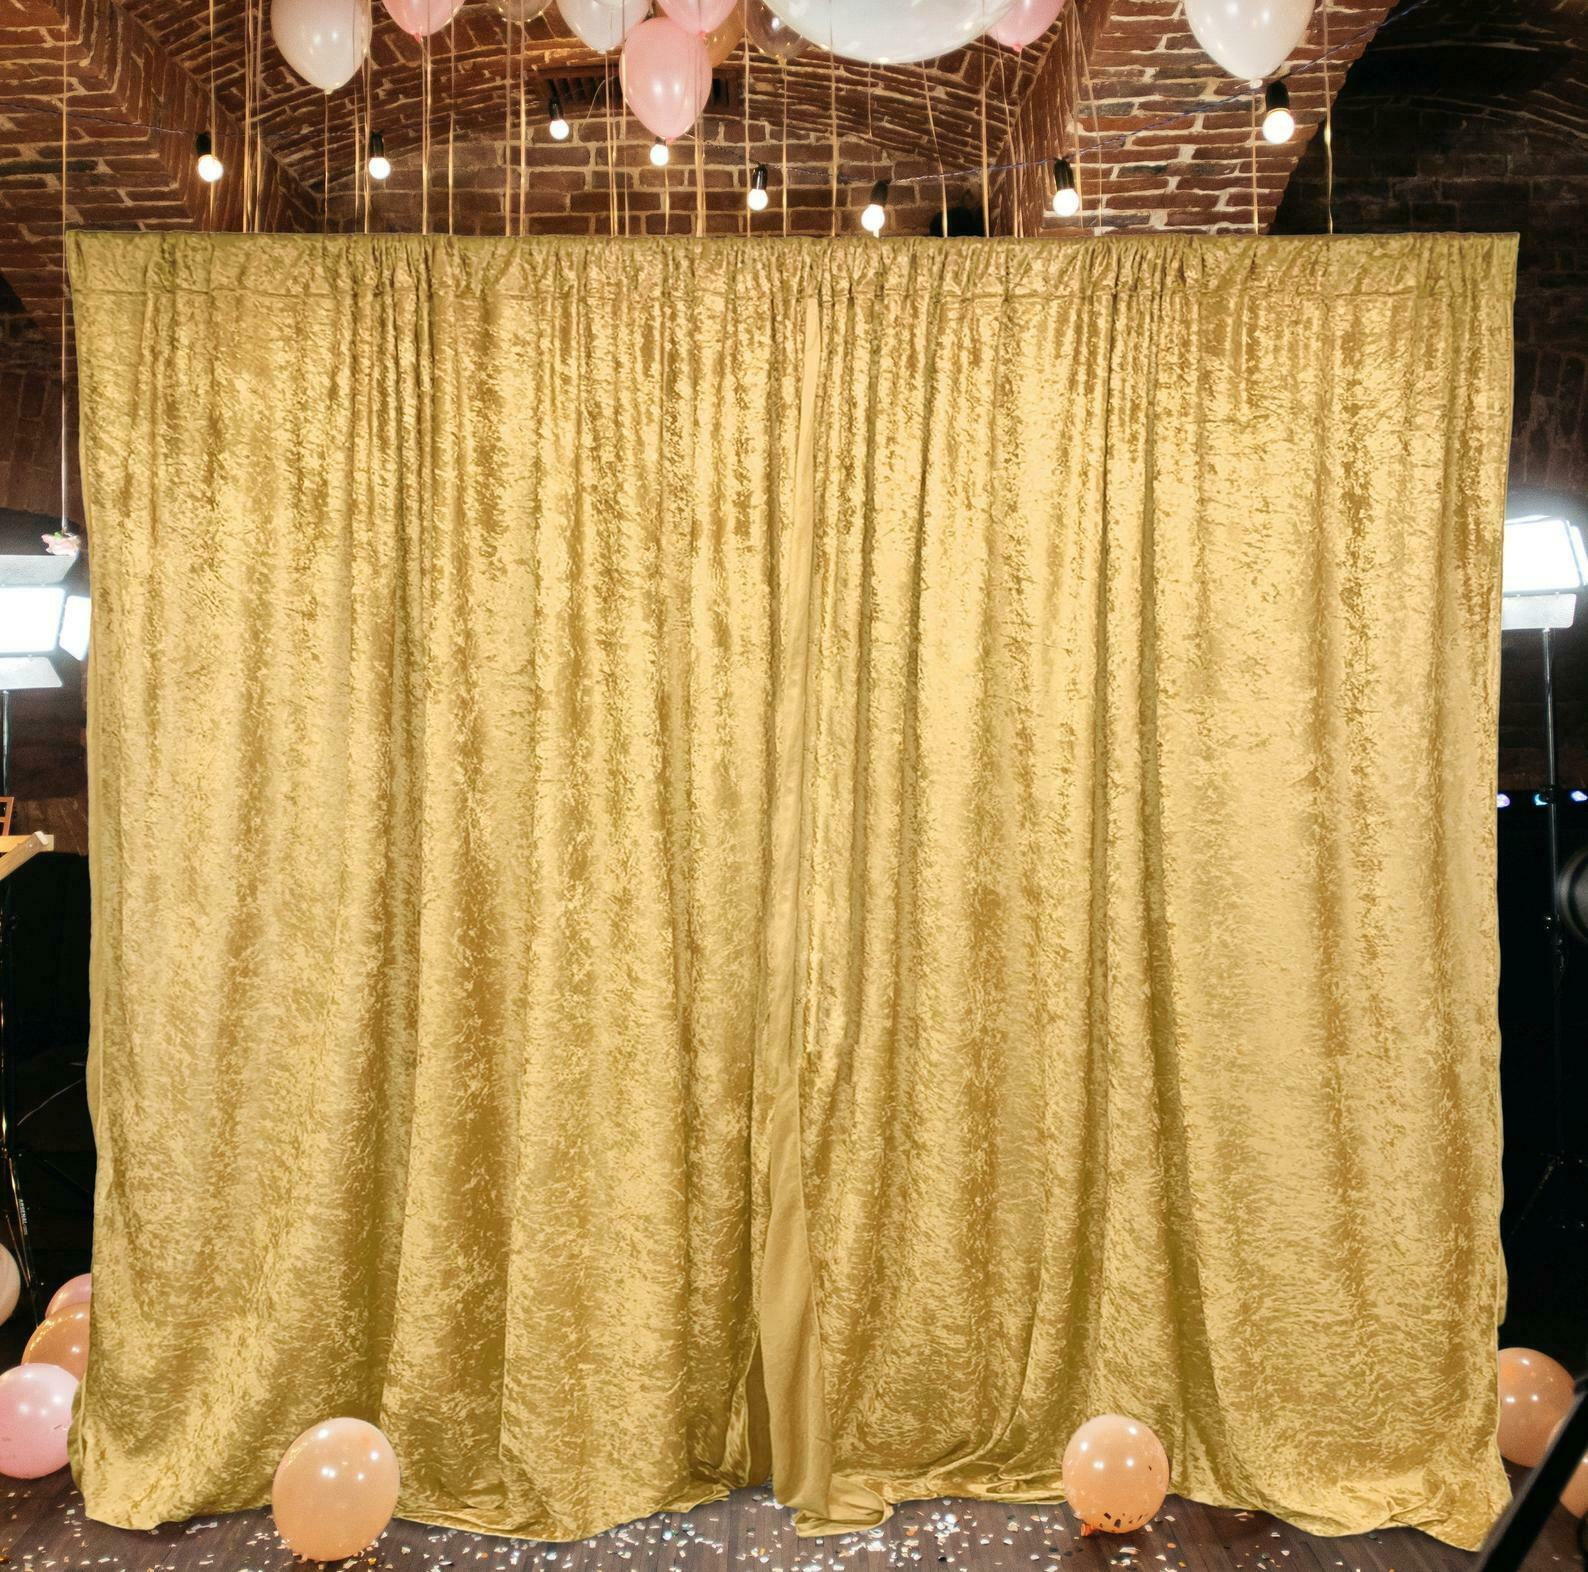 Primary image for 10 feet x 10 feet Panne Velvet Event Backdrop Drapes Curtains Panels Rod Pocket